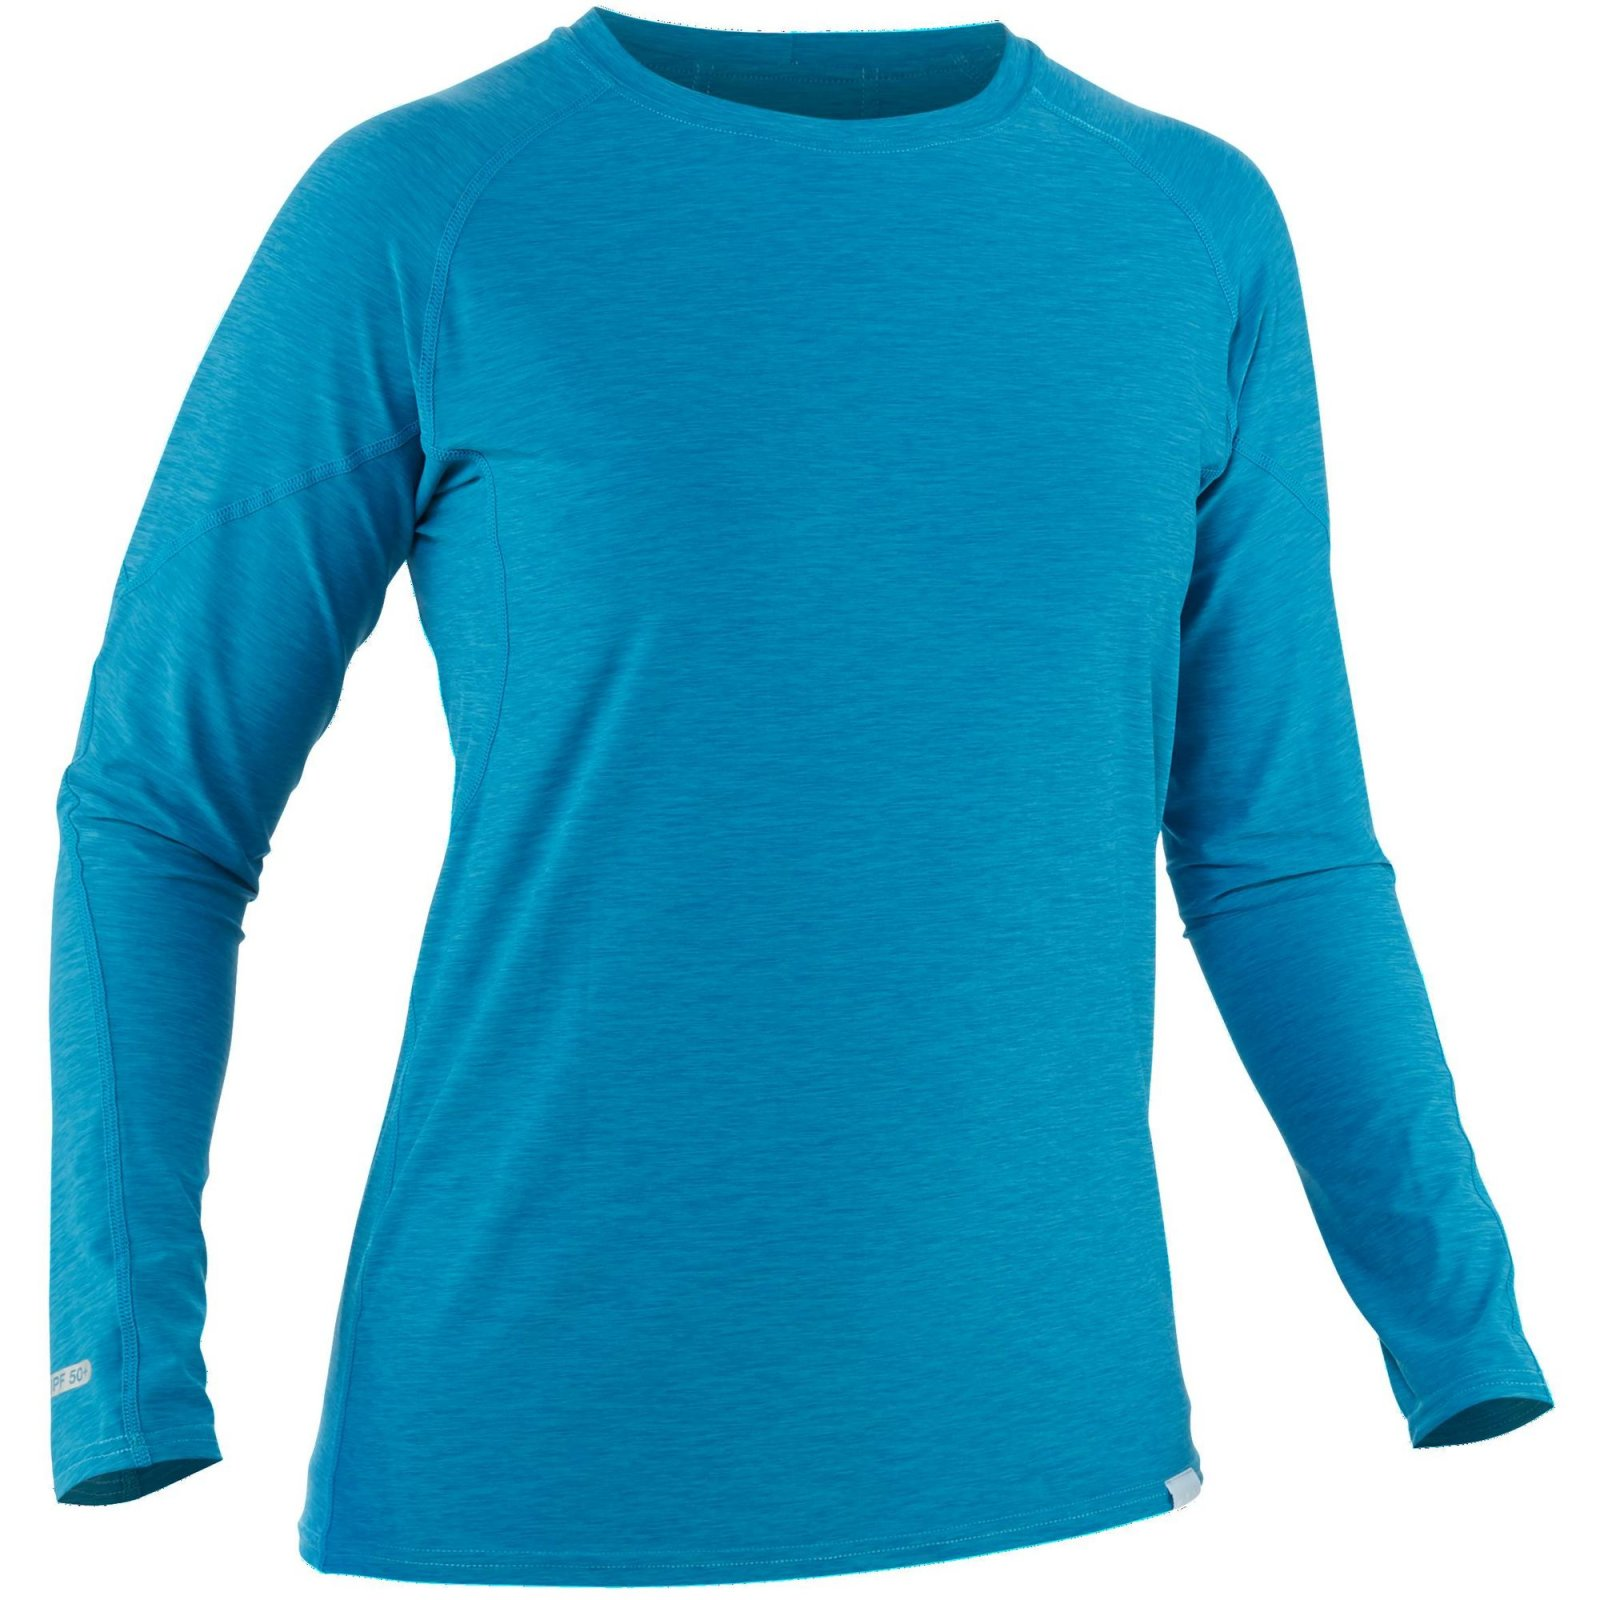 NRS - Women's H2Core Silkweight L/S Shirt Fjord